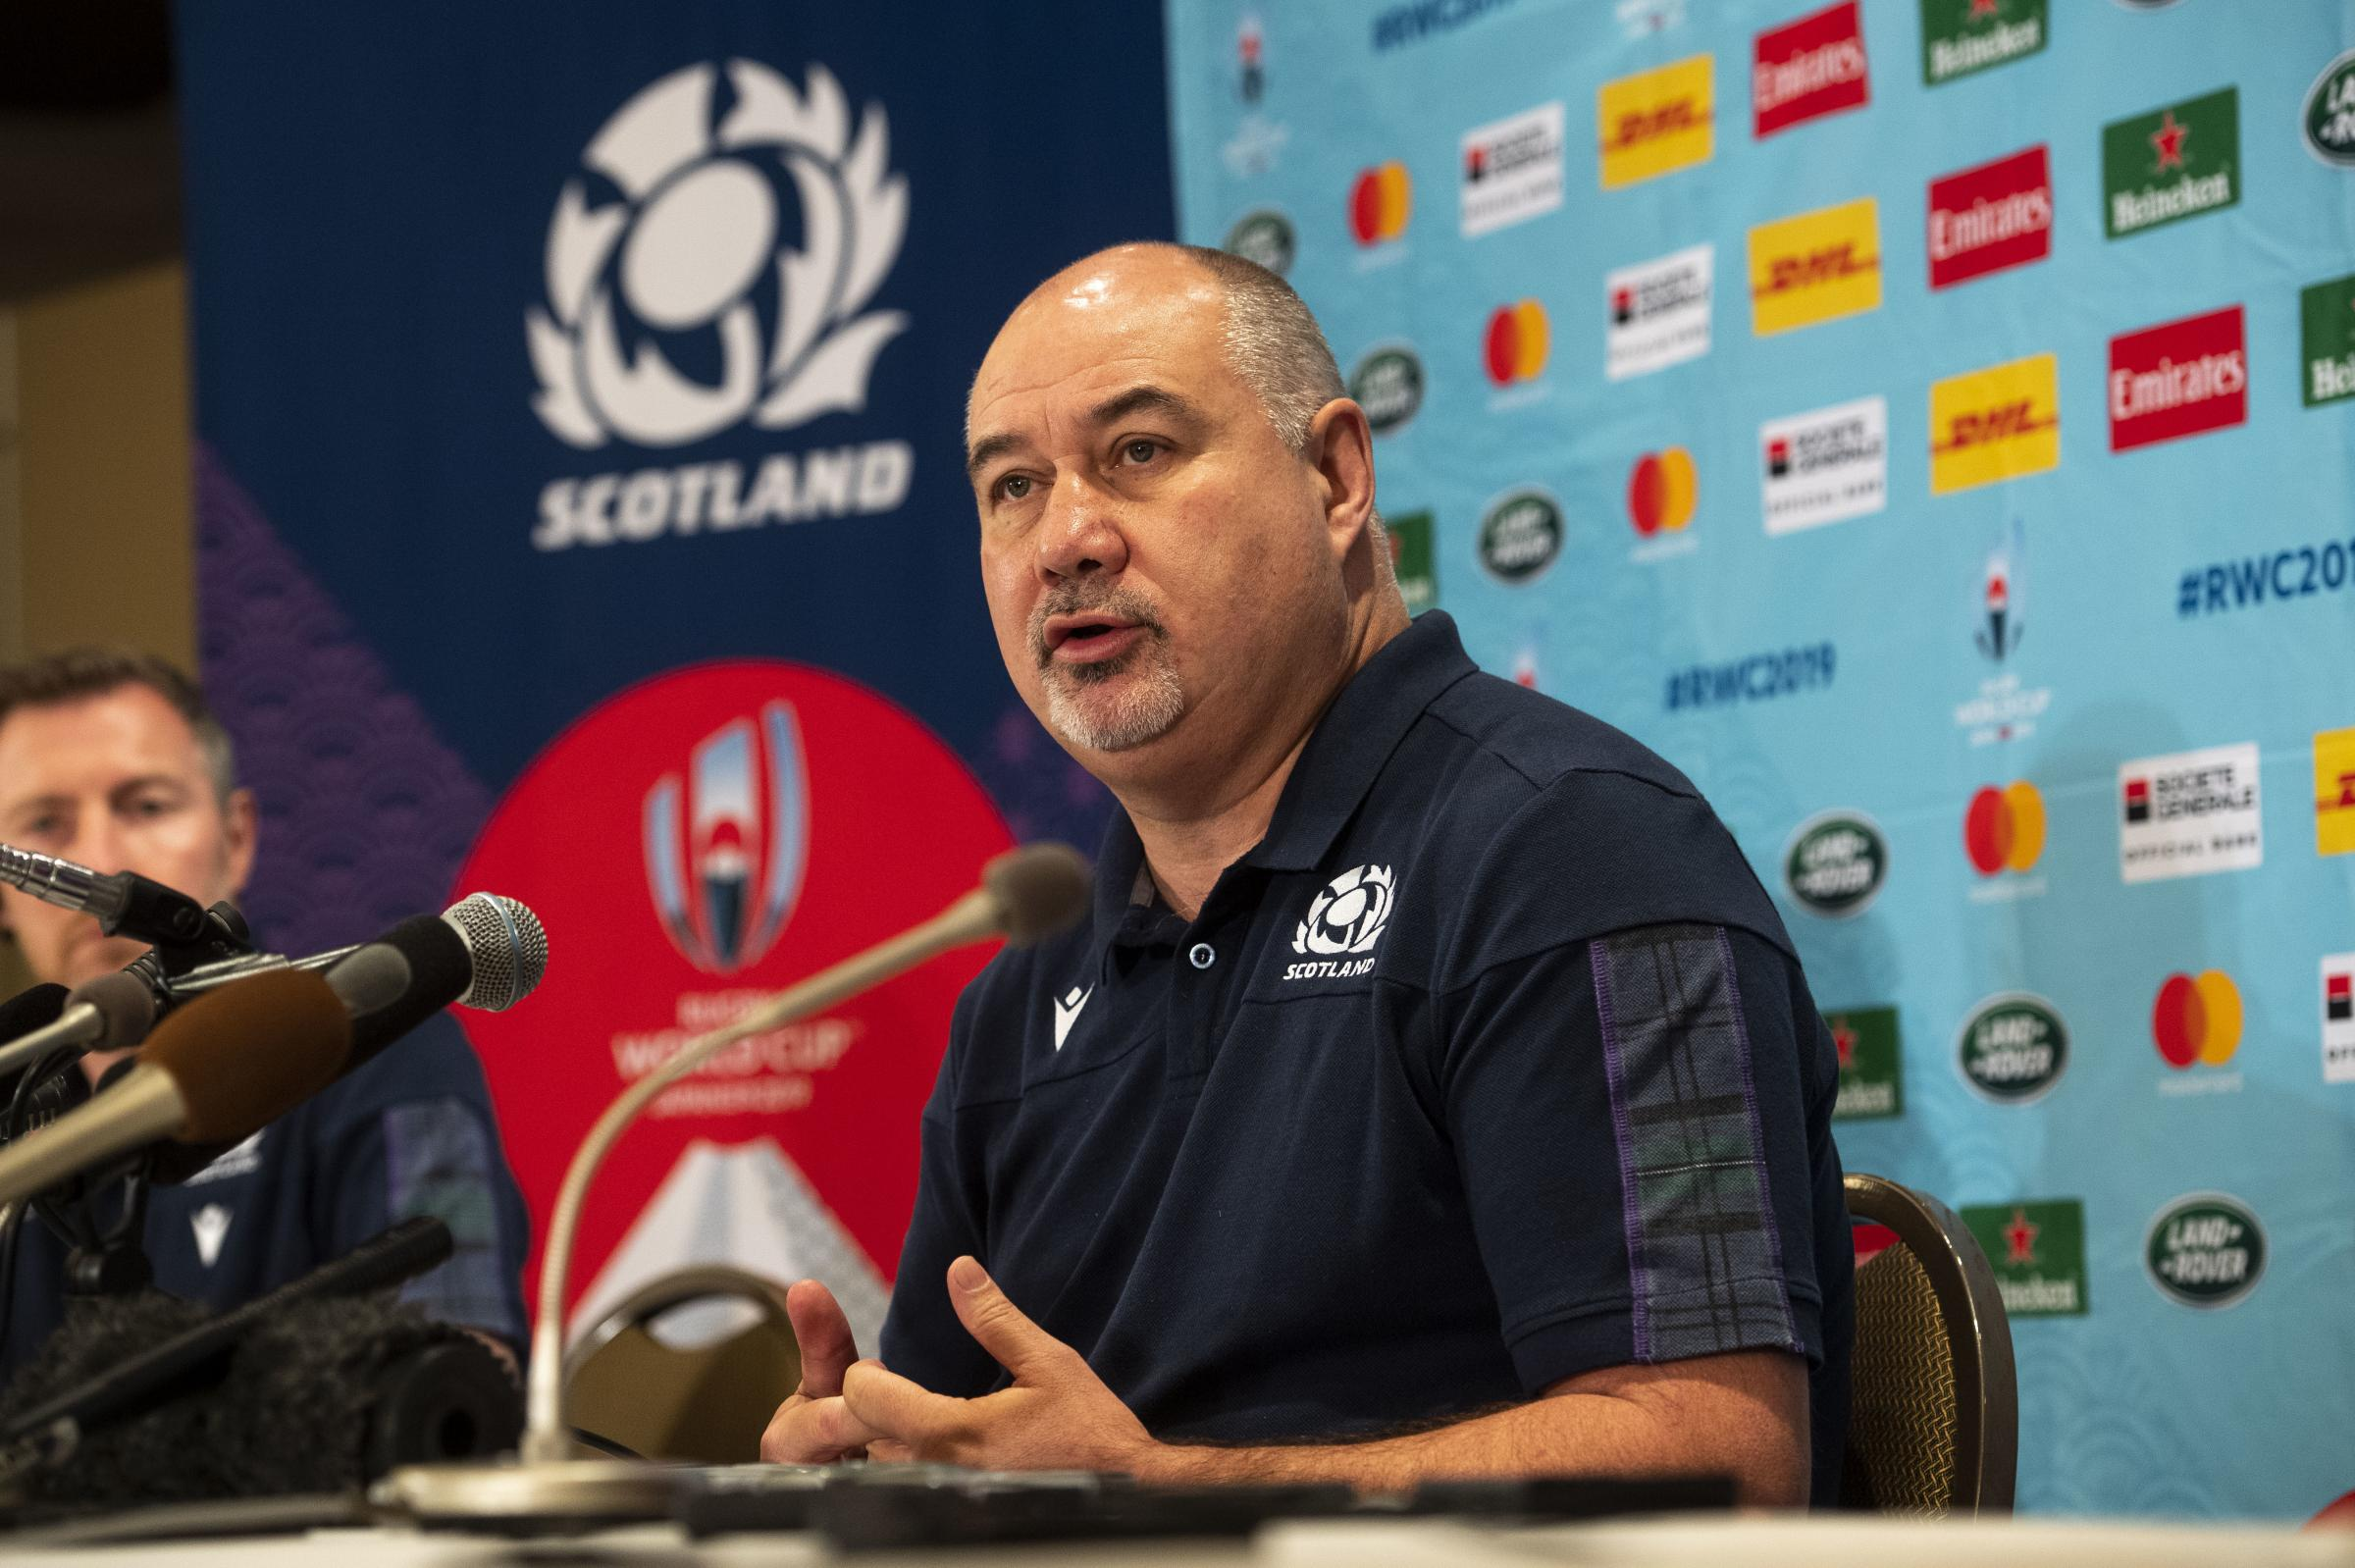 Scottish Rugby Union chief must go after conduct at World Cup